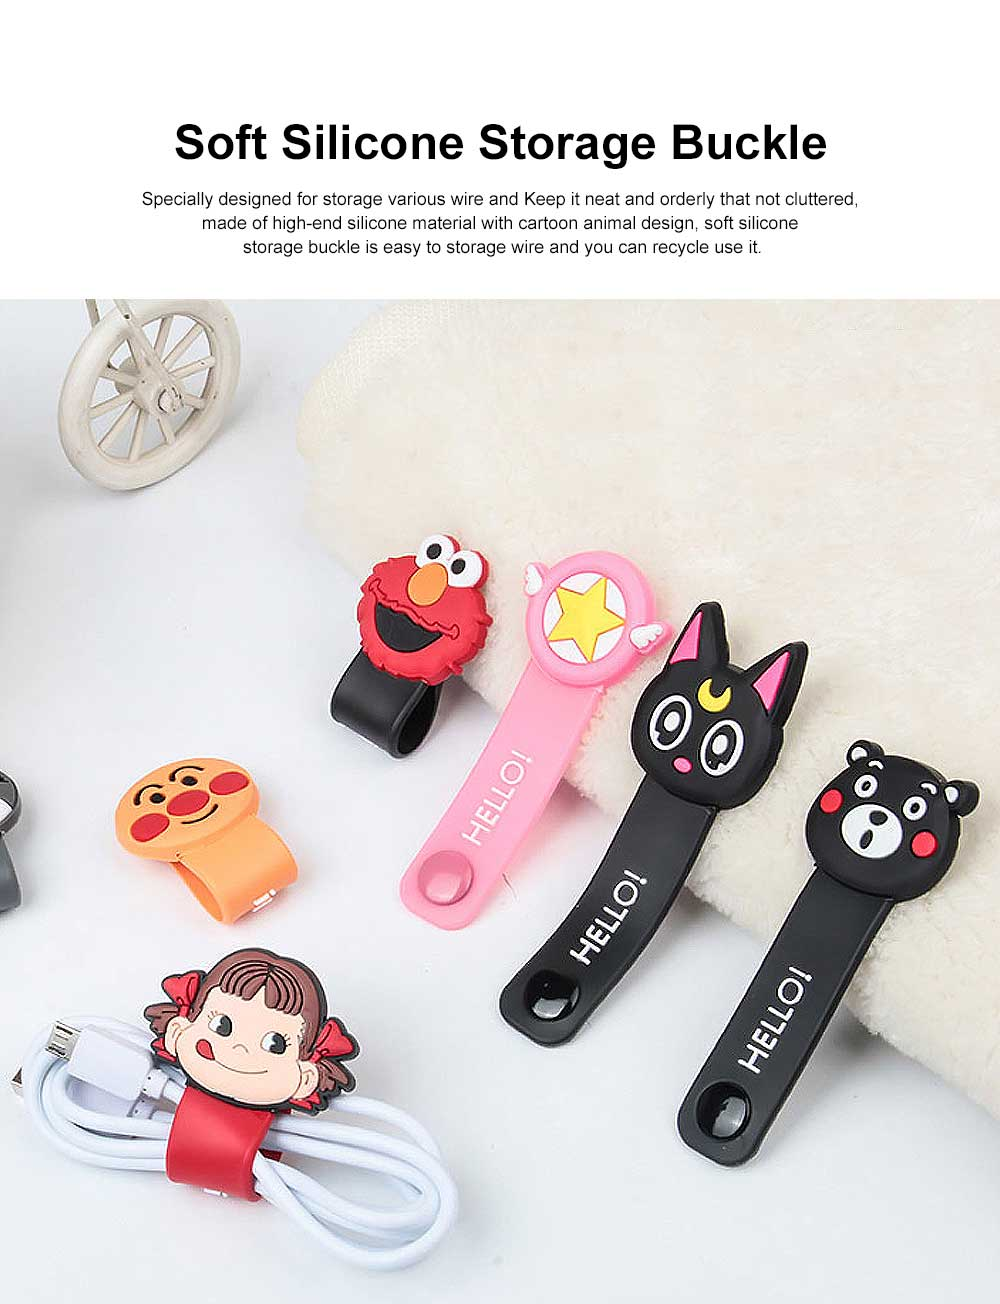 Soft Silicone Wire Cable Organizer, Cartoon Animals Line Manager for Data Cable 0